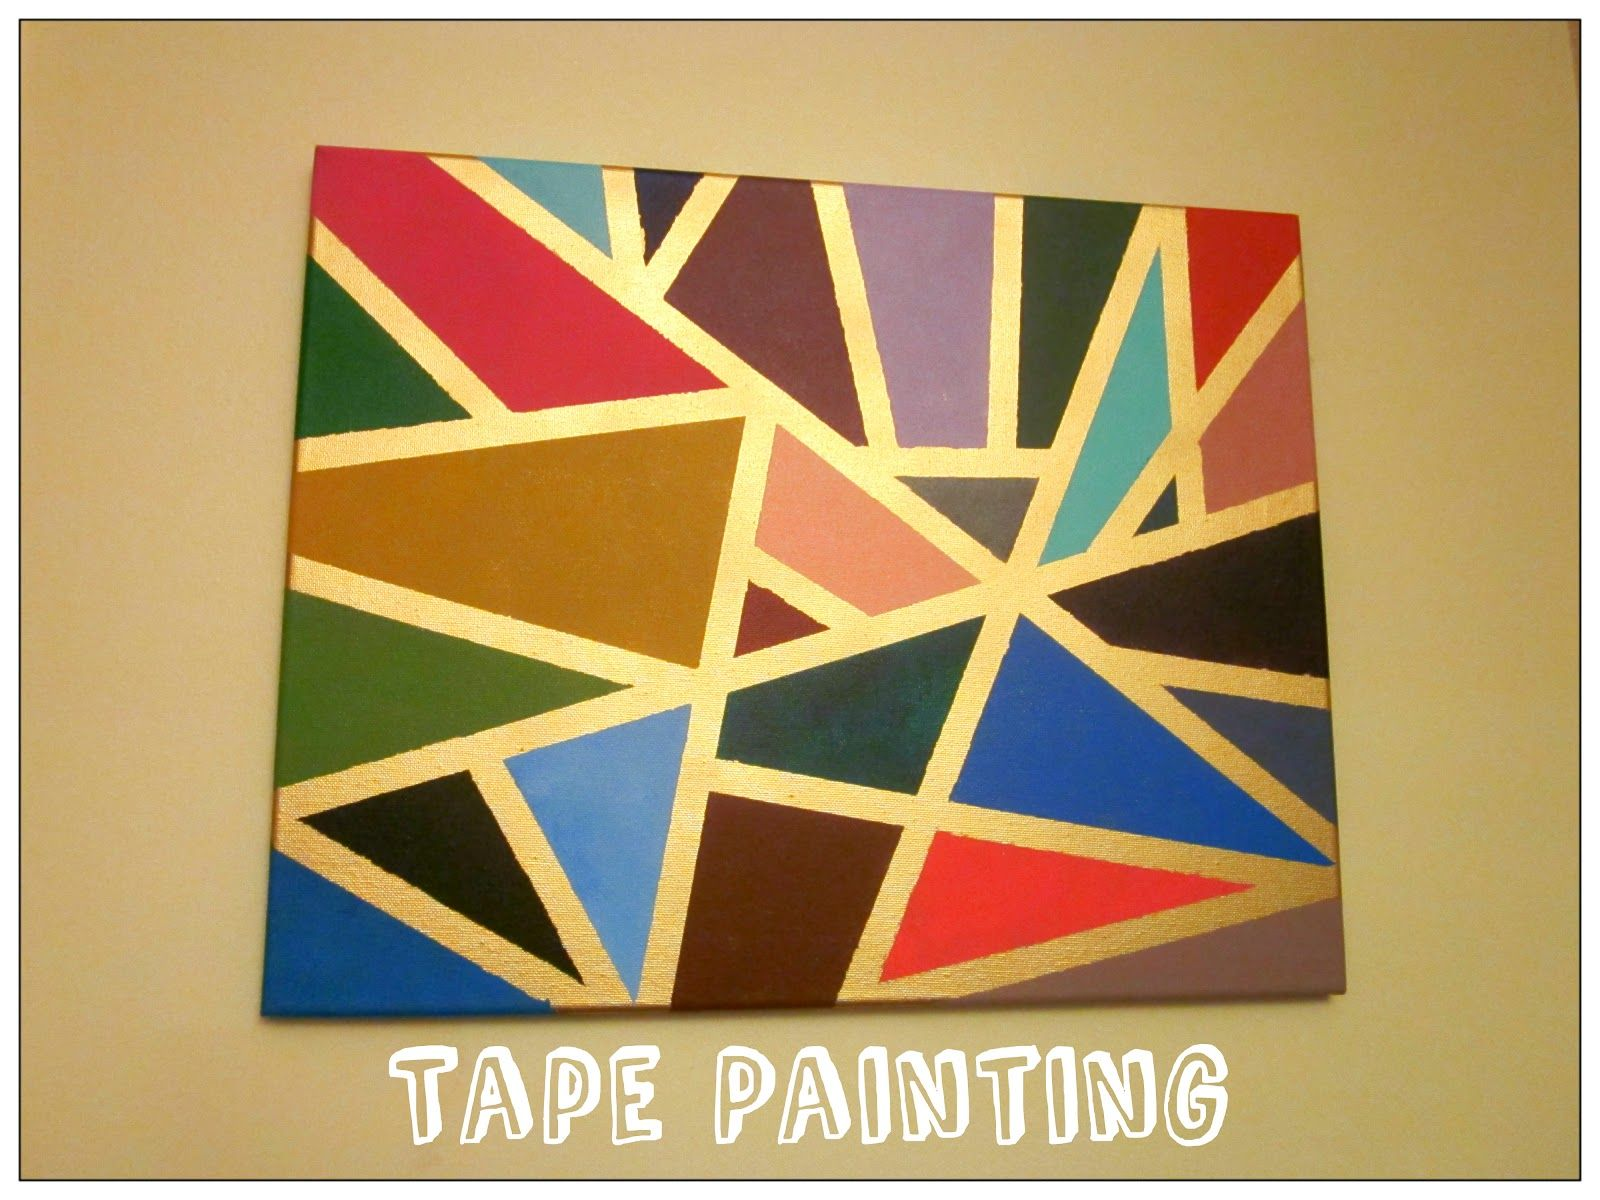 diy tape painting canvas art | Do You Like To Do It Yourself ...